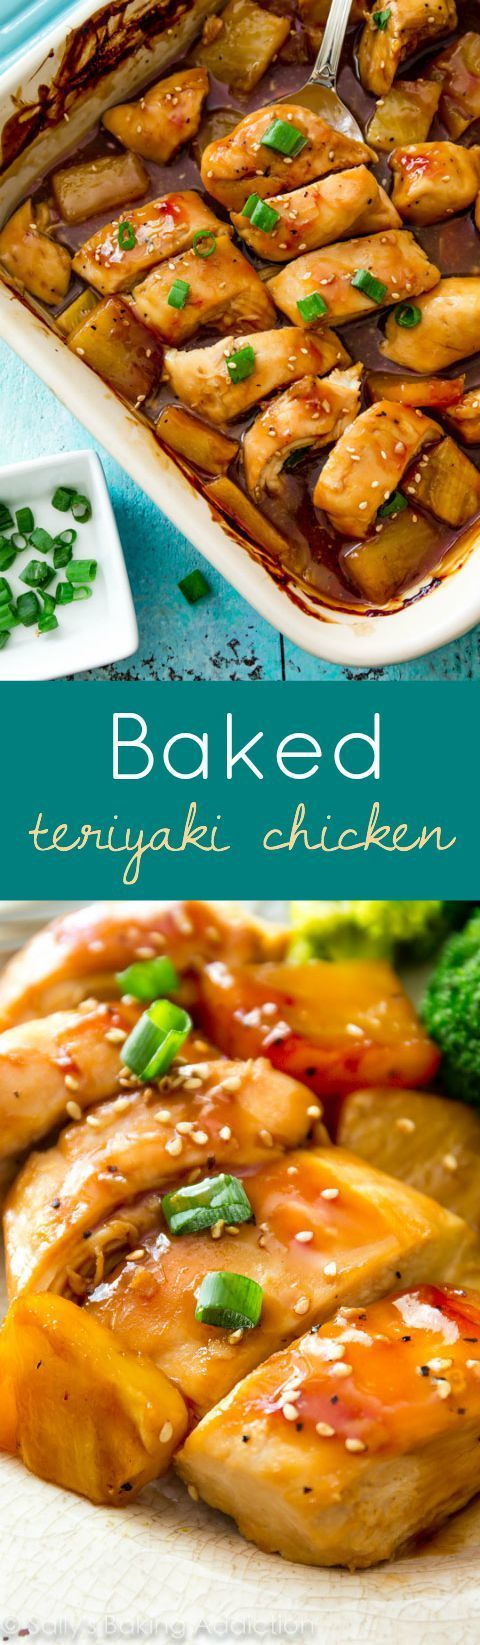 Two easy steps to an amazing dinner; simply pour this homemade teriyaki sauce over chicken and bake! Recipe on sallysbakingaddiction.com